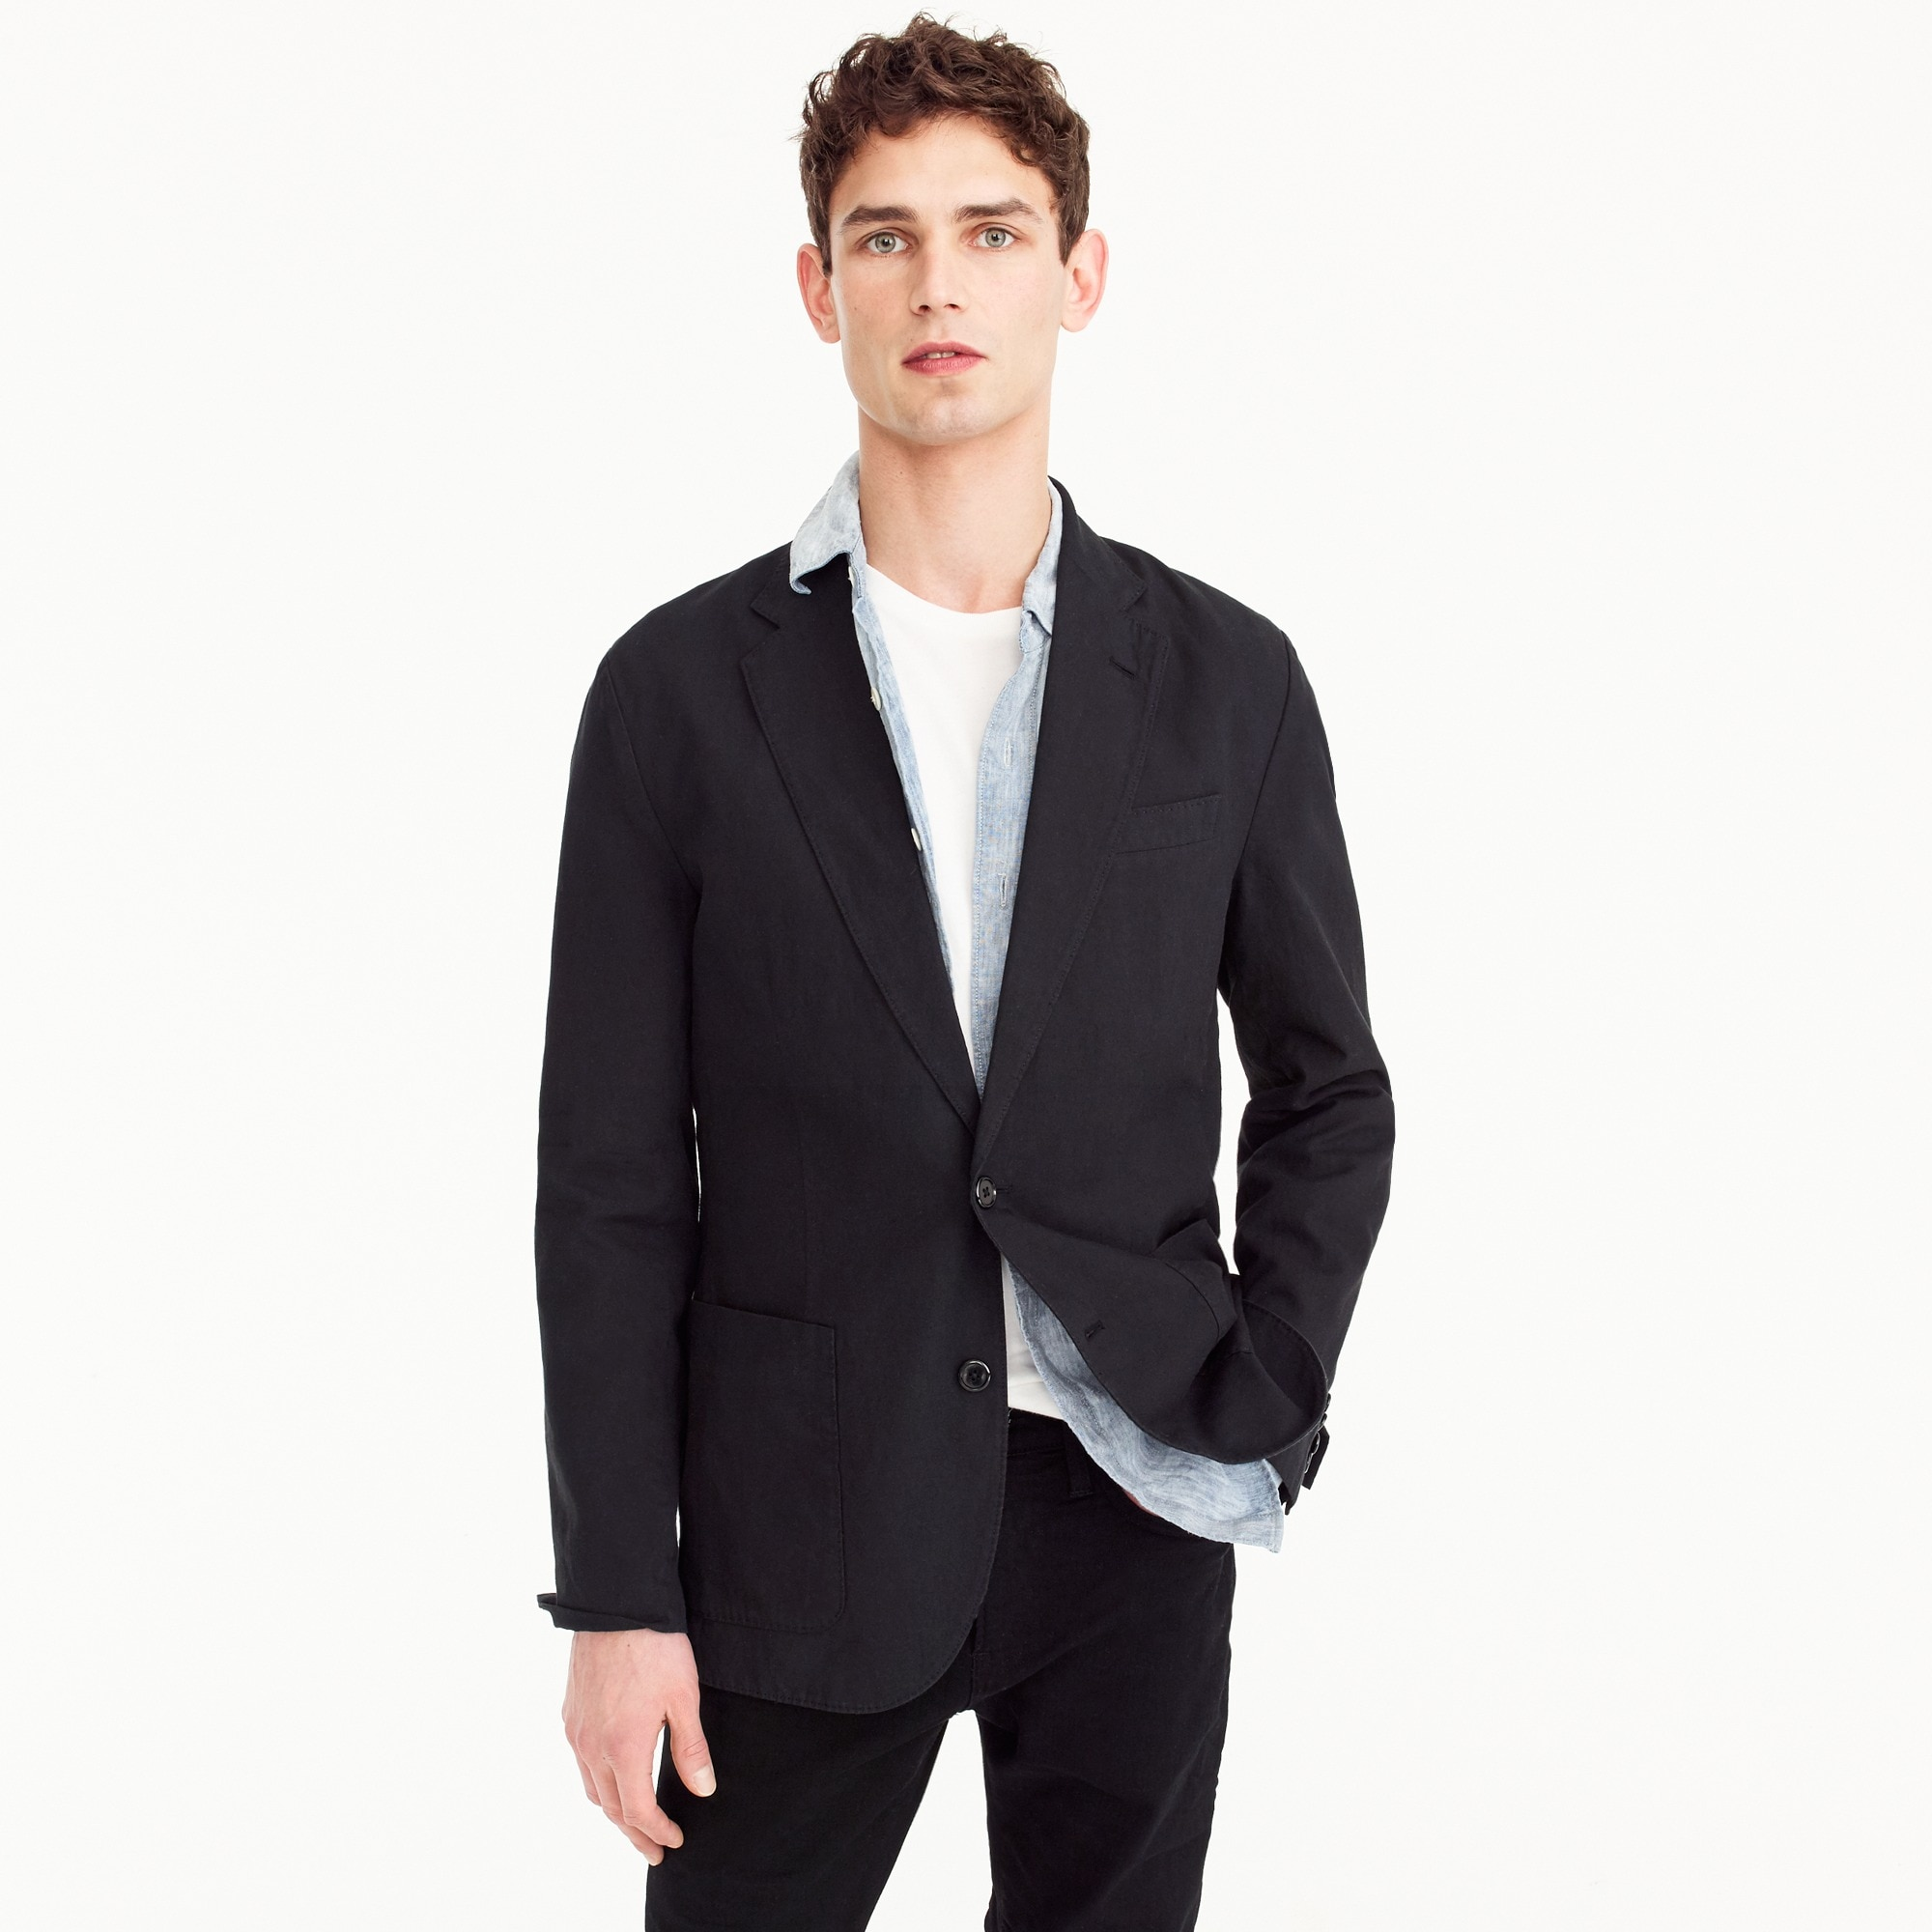 Image 1 for Unstructured Slim-fit Ludlow blazer in garment-dyed cotton-linen